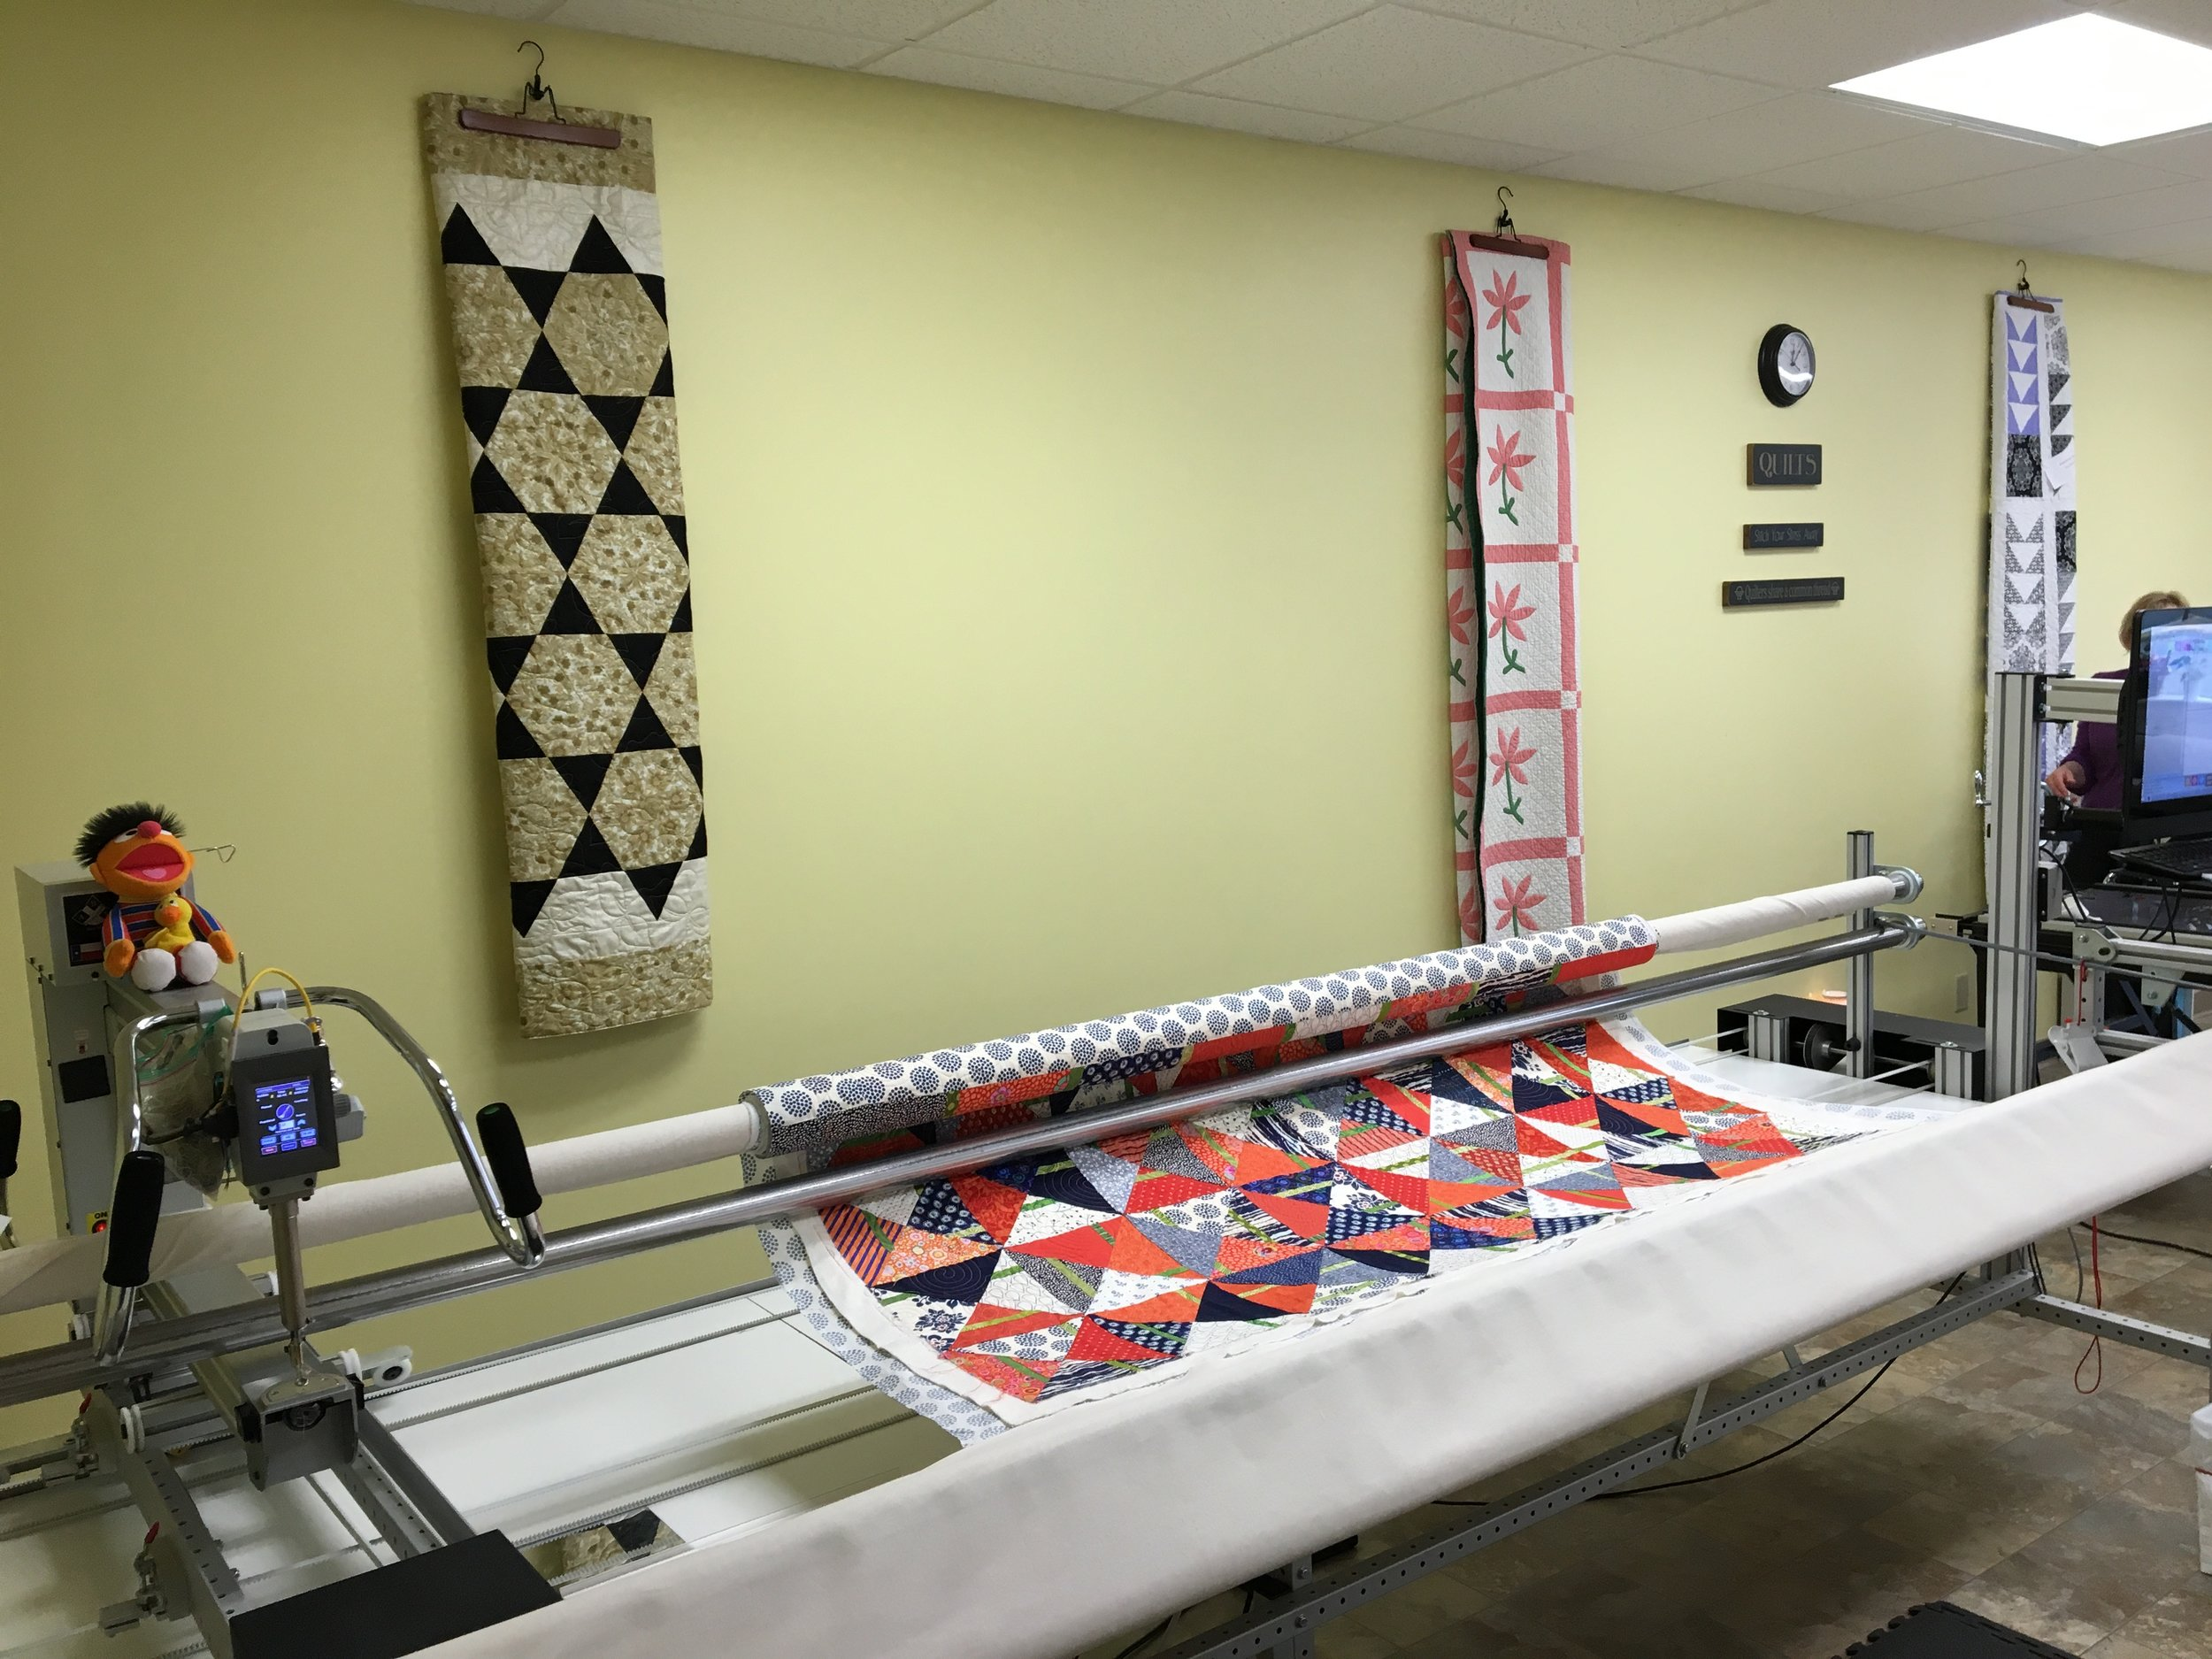 Machine Rental - Hourly Machine Rental - $25.00/hr(must first take certification class)Thread Charge - $1.00 - $5.00(based on quilt size)Additional zipper leads 126